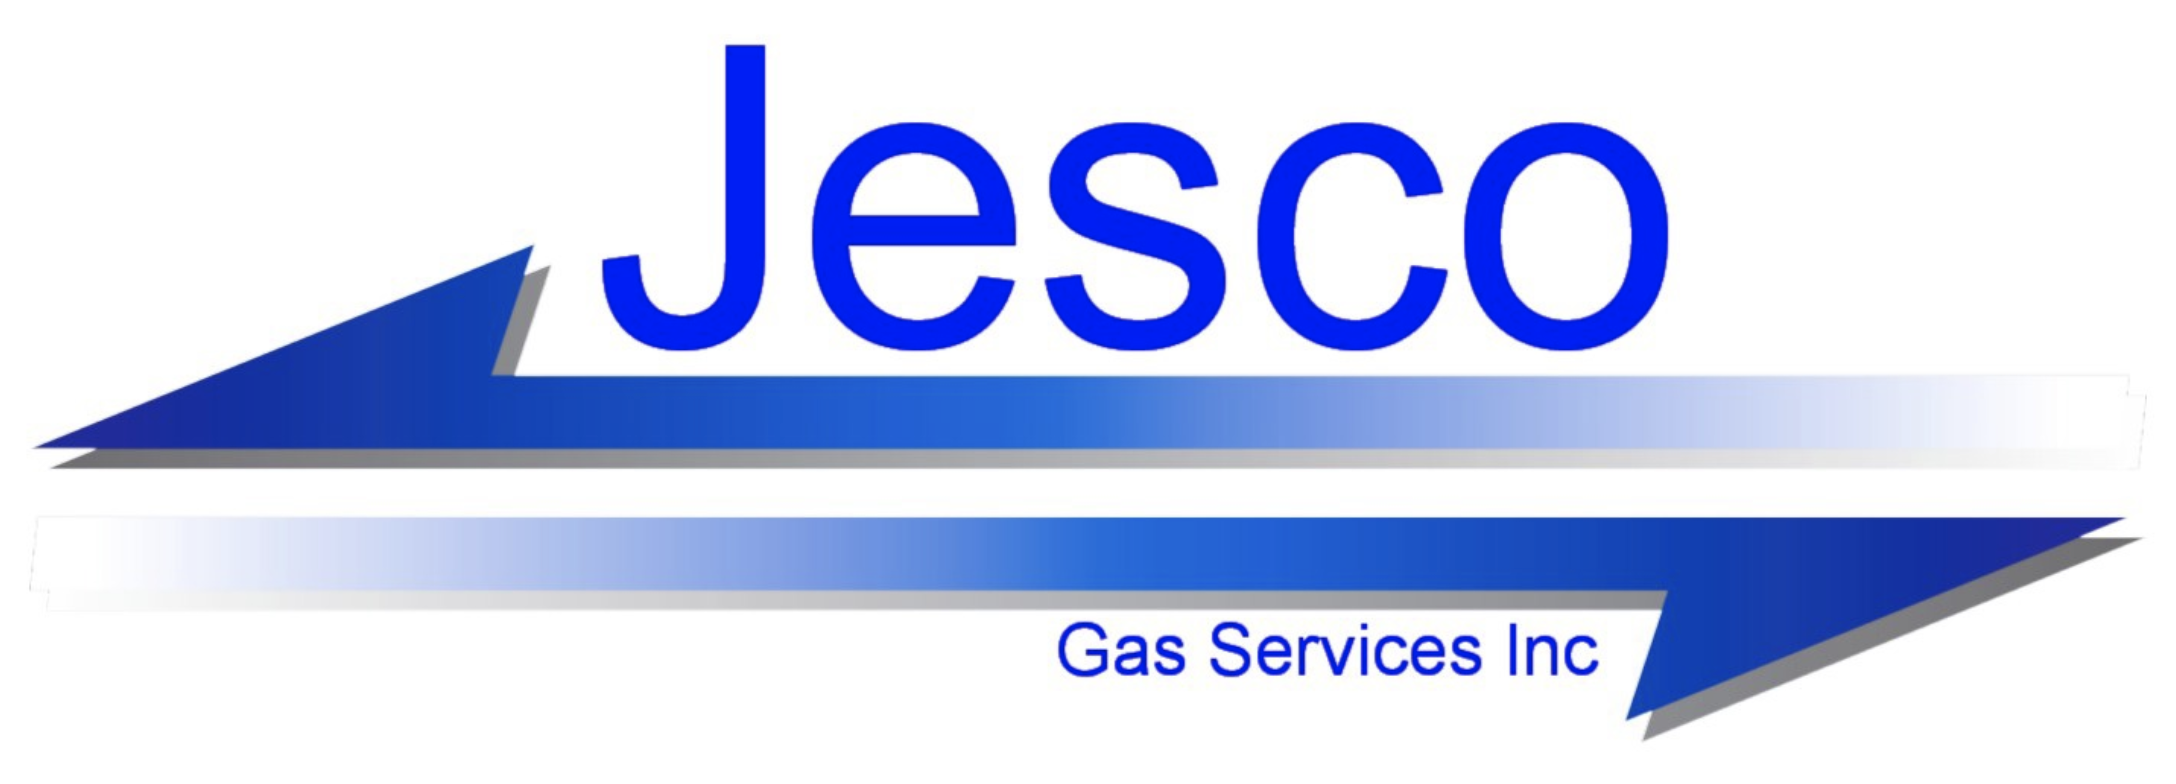 Jesco Gas Services Inc